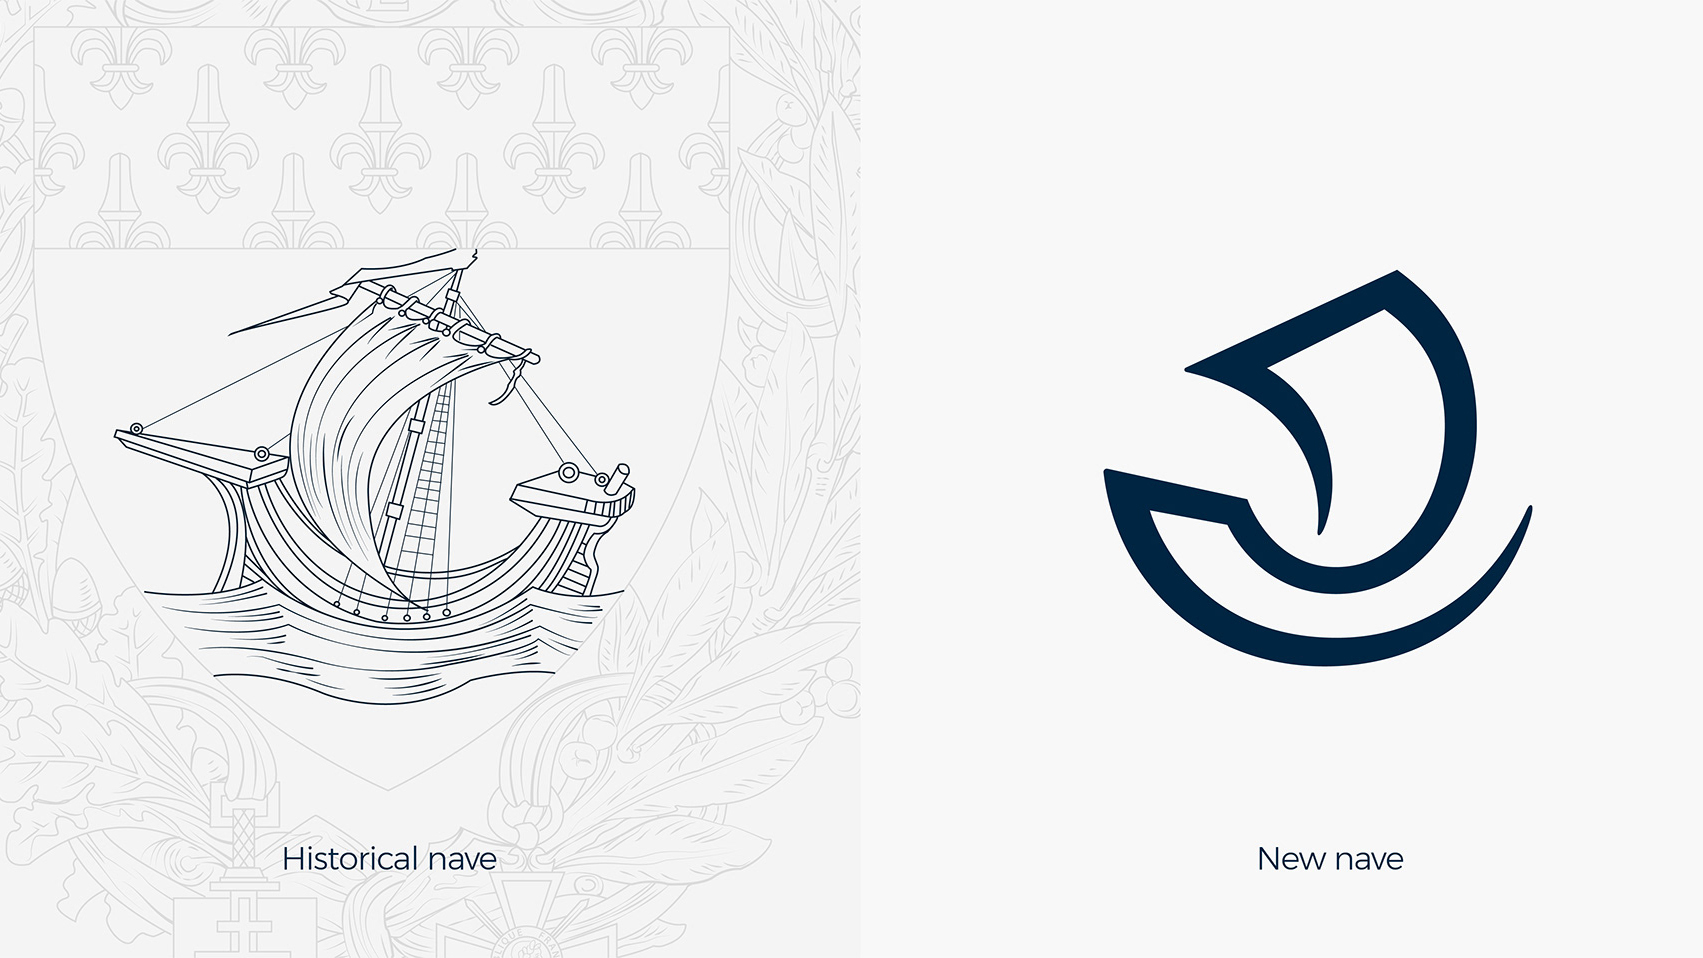 Old boat nave next to the new single stroke logo